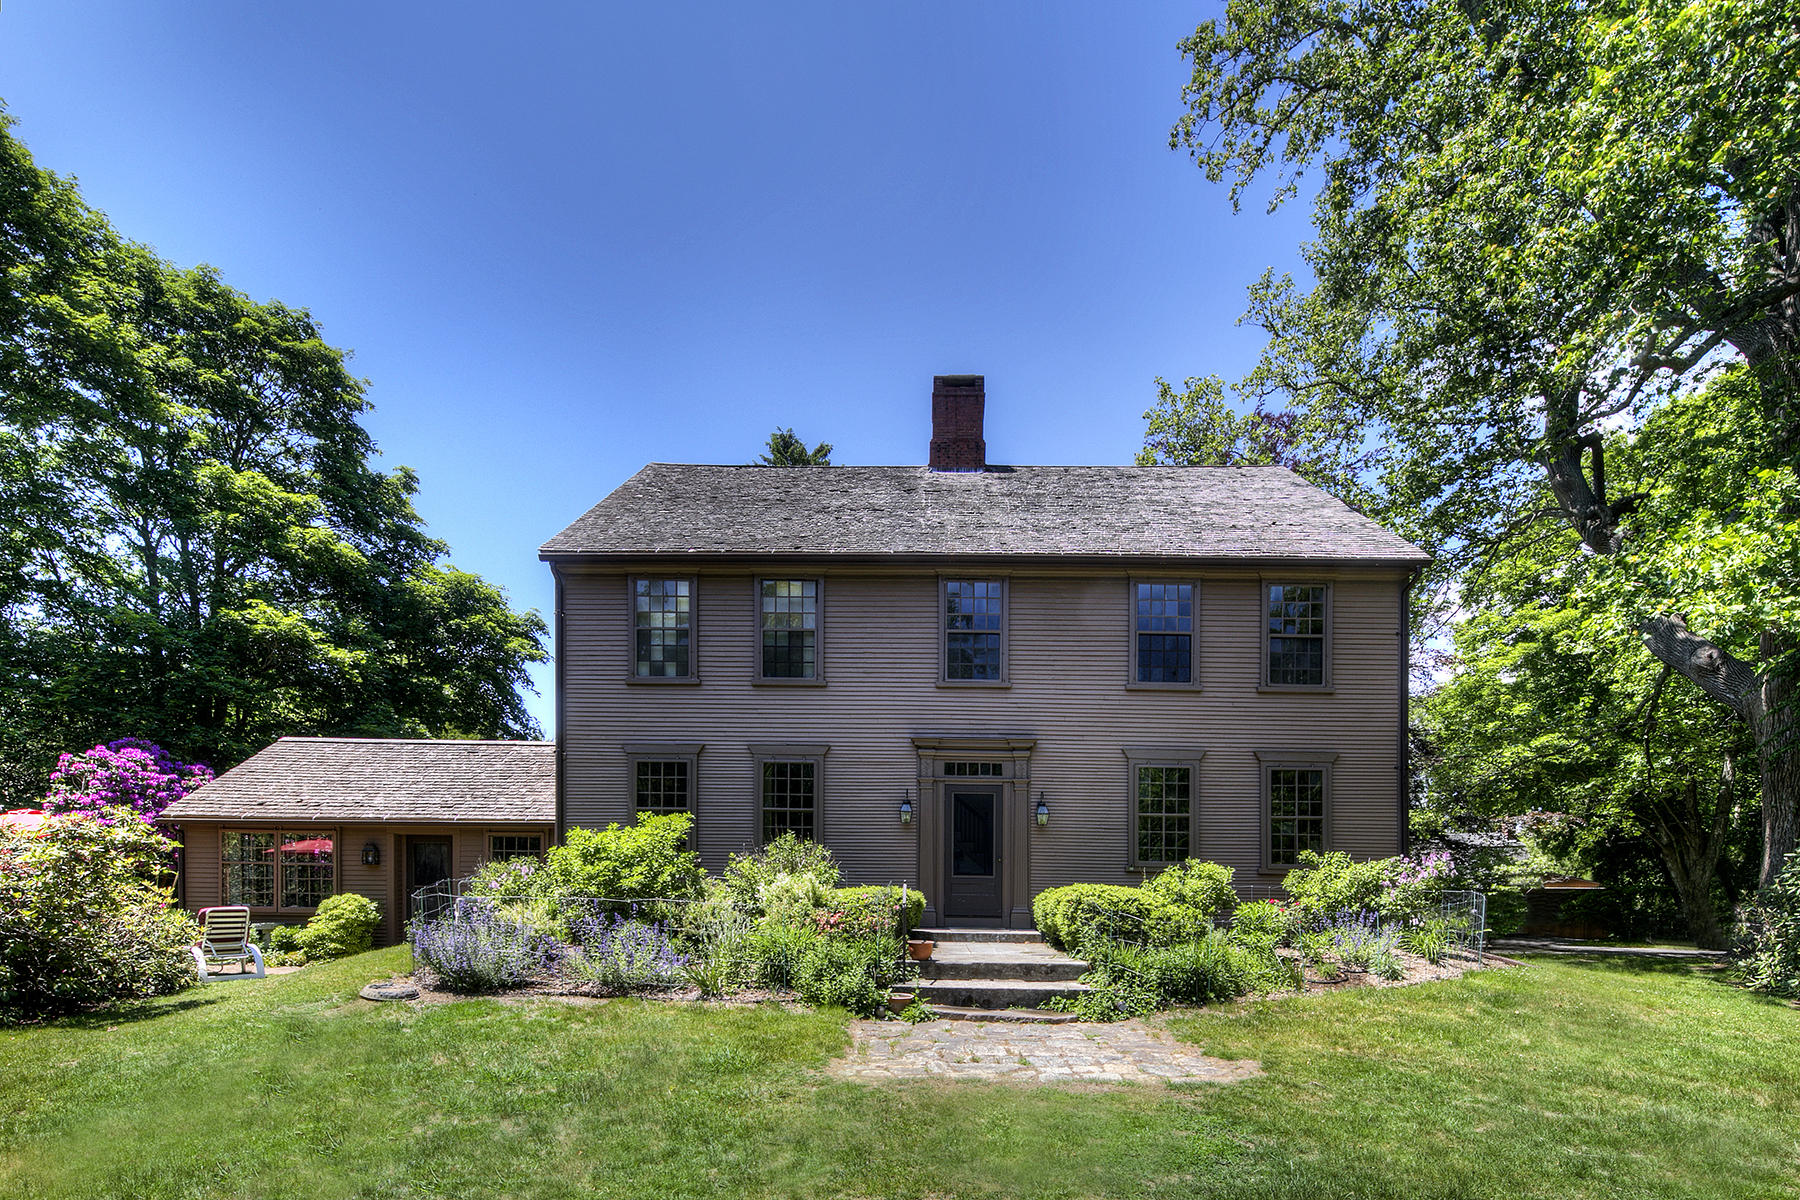 Casa Unifamiliar por un Venta en The Potter Homestead 40 Potter Lane South Kingstown, Rhode Island 02881 Estados Unidos